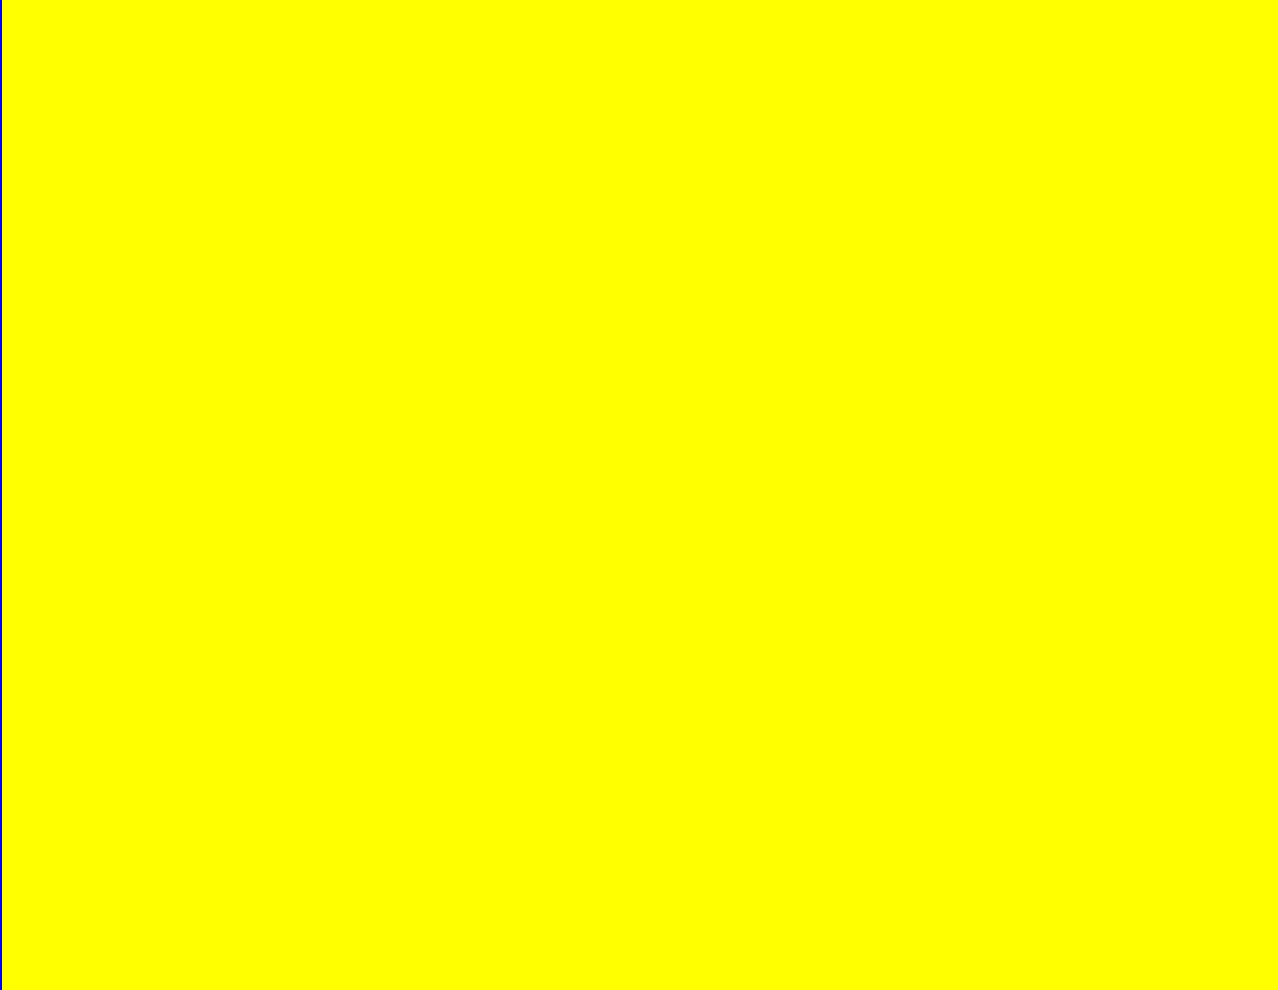 Yellow Color Images